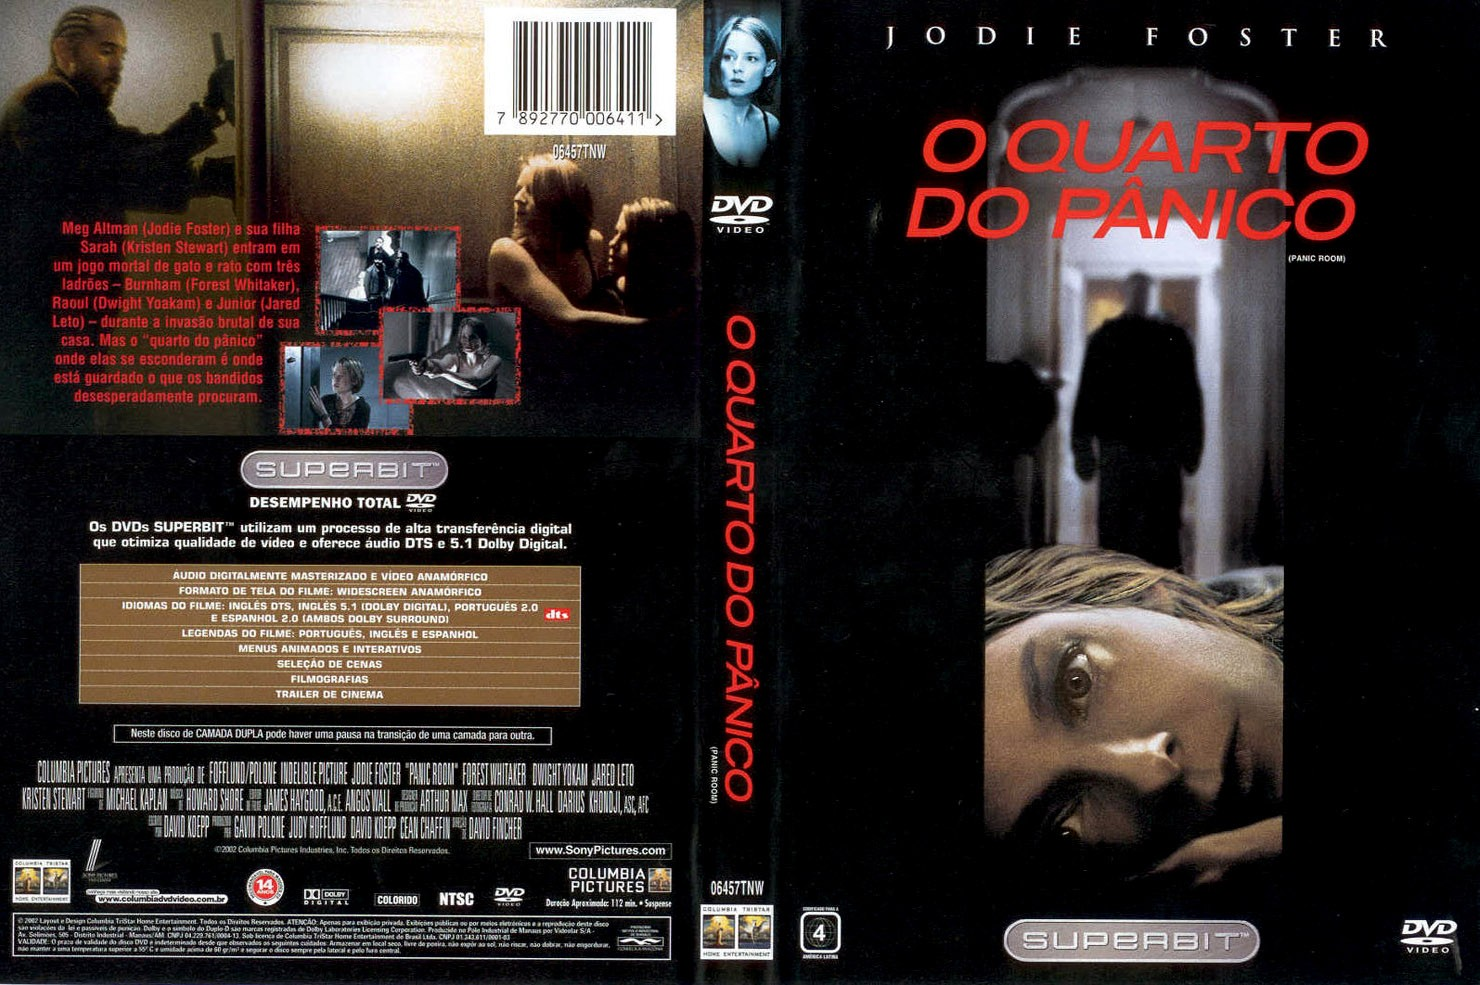 DVD LACRADO O QUARTO DO PANICO SUPERBIT JODIE FOSTER - AUDIO EM PORTUGUES